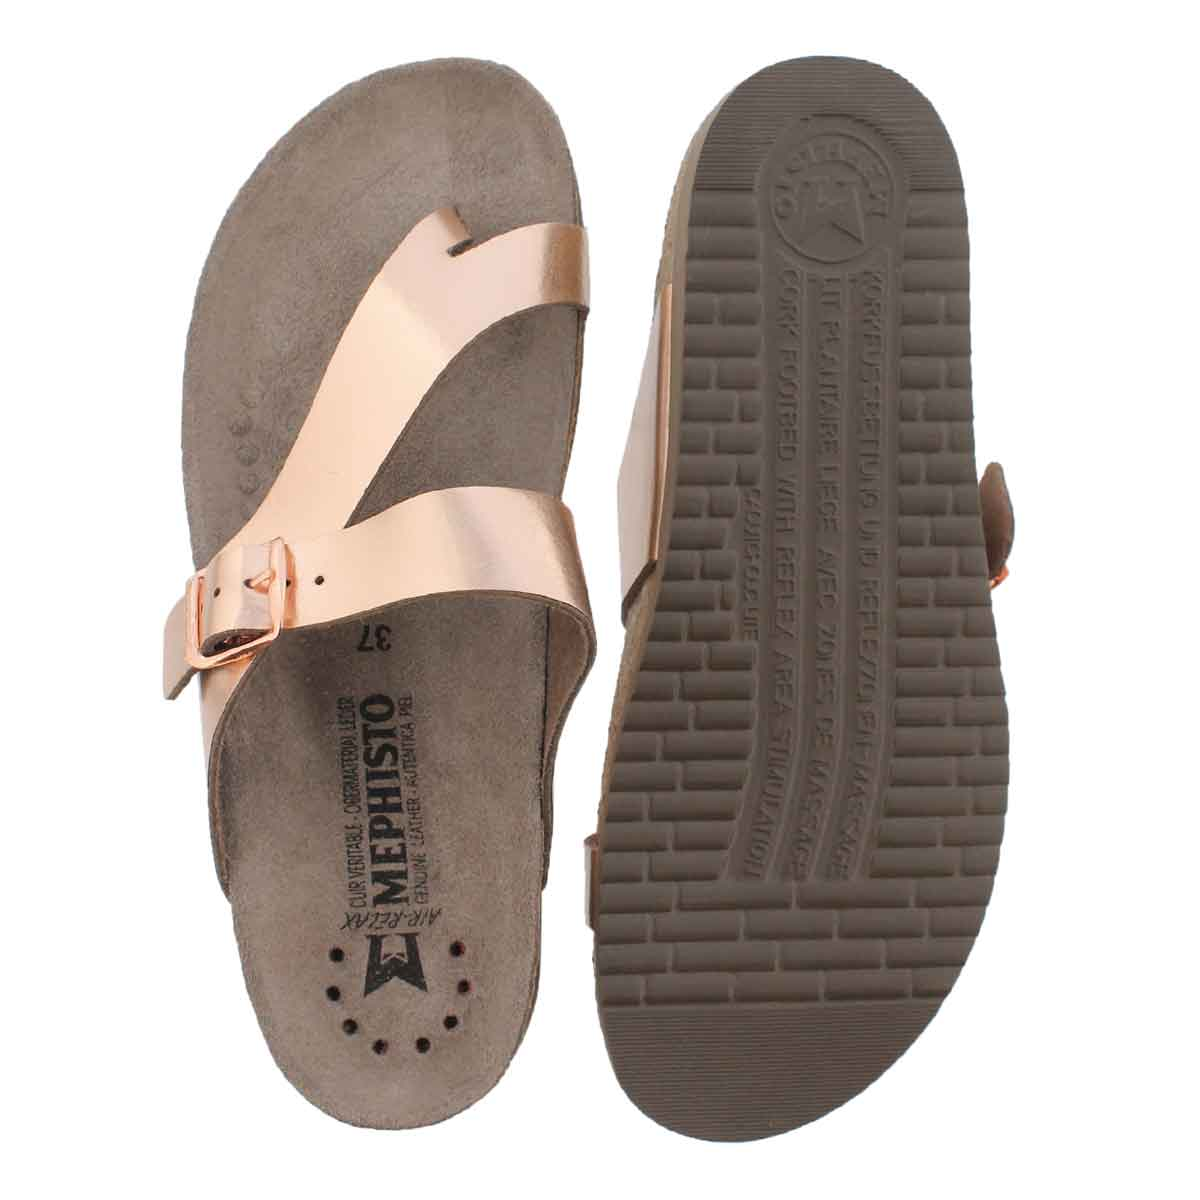 Lds Helen pink star cork footbed